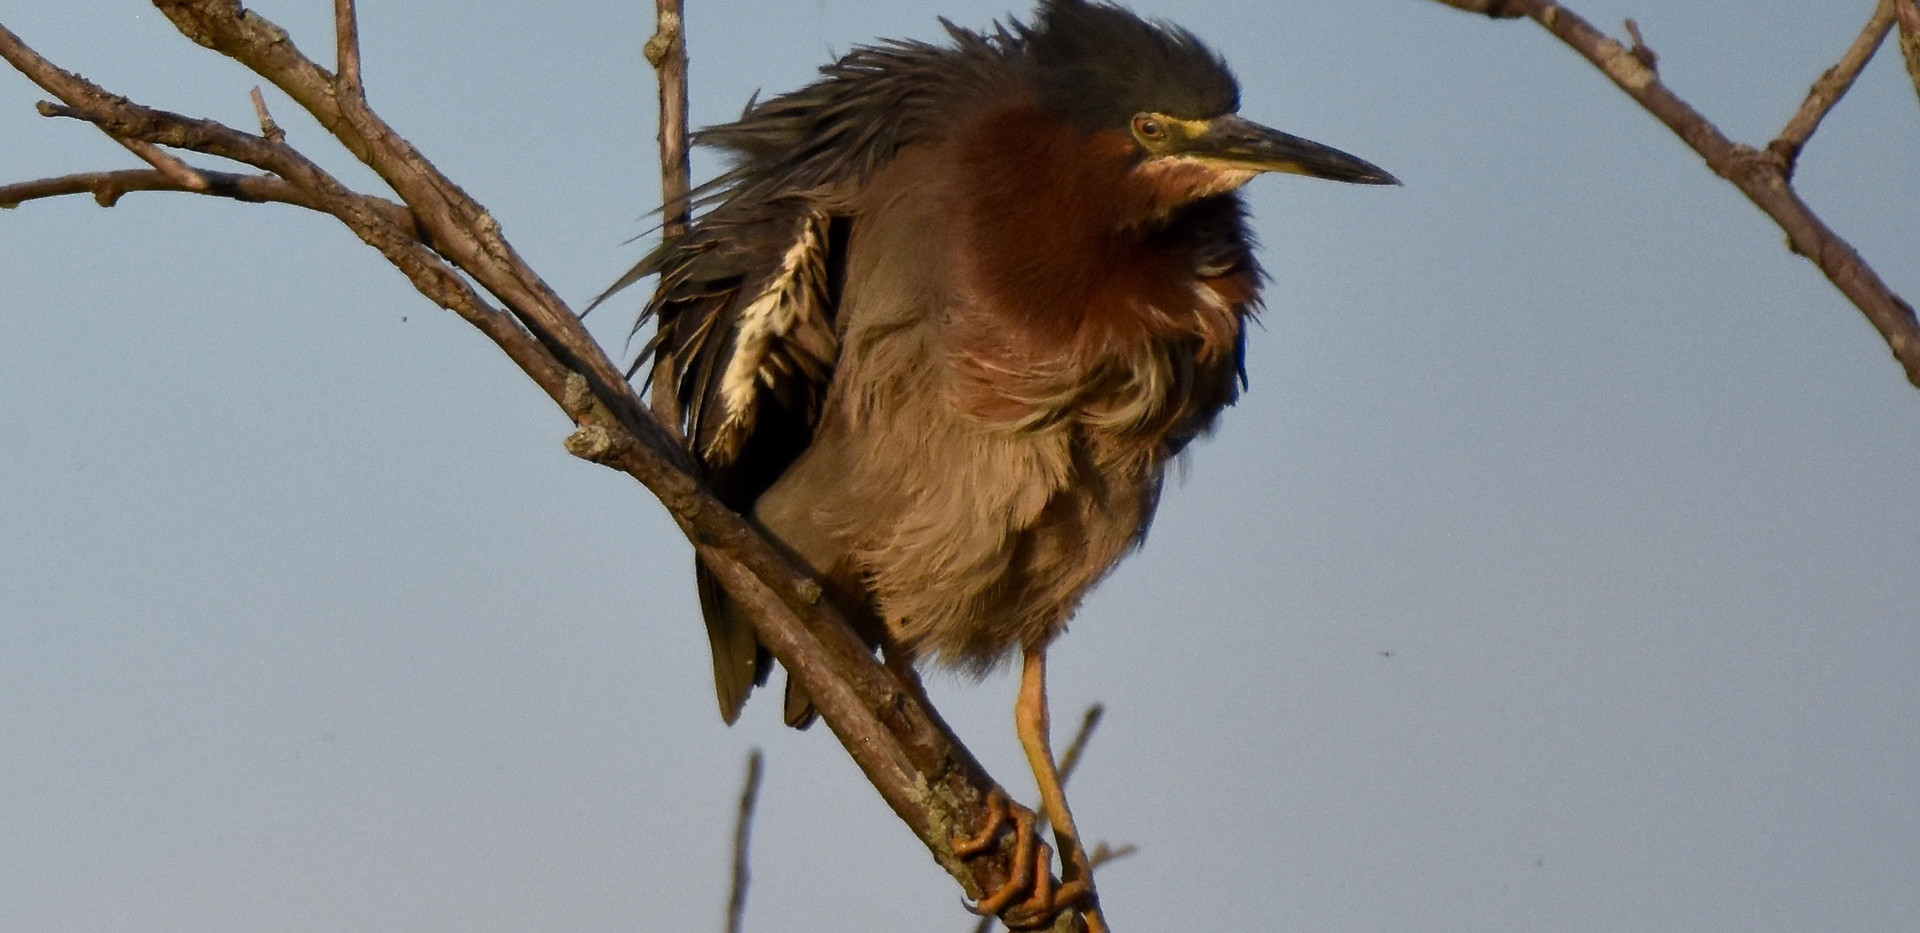 Green Heron shaking feathers 2020*** - 1